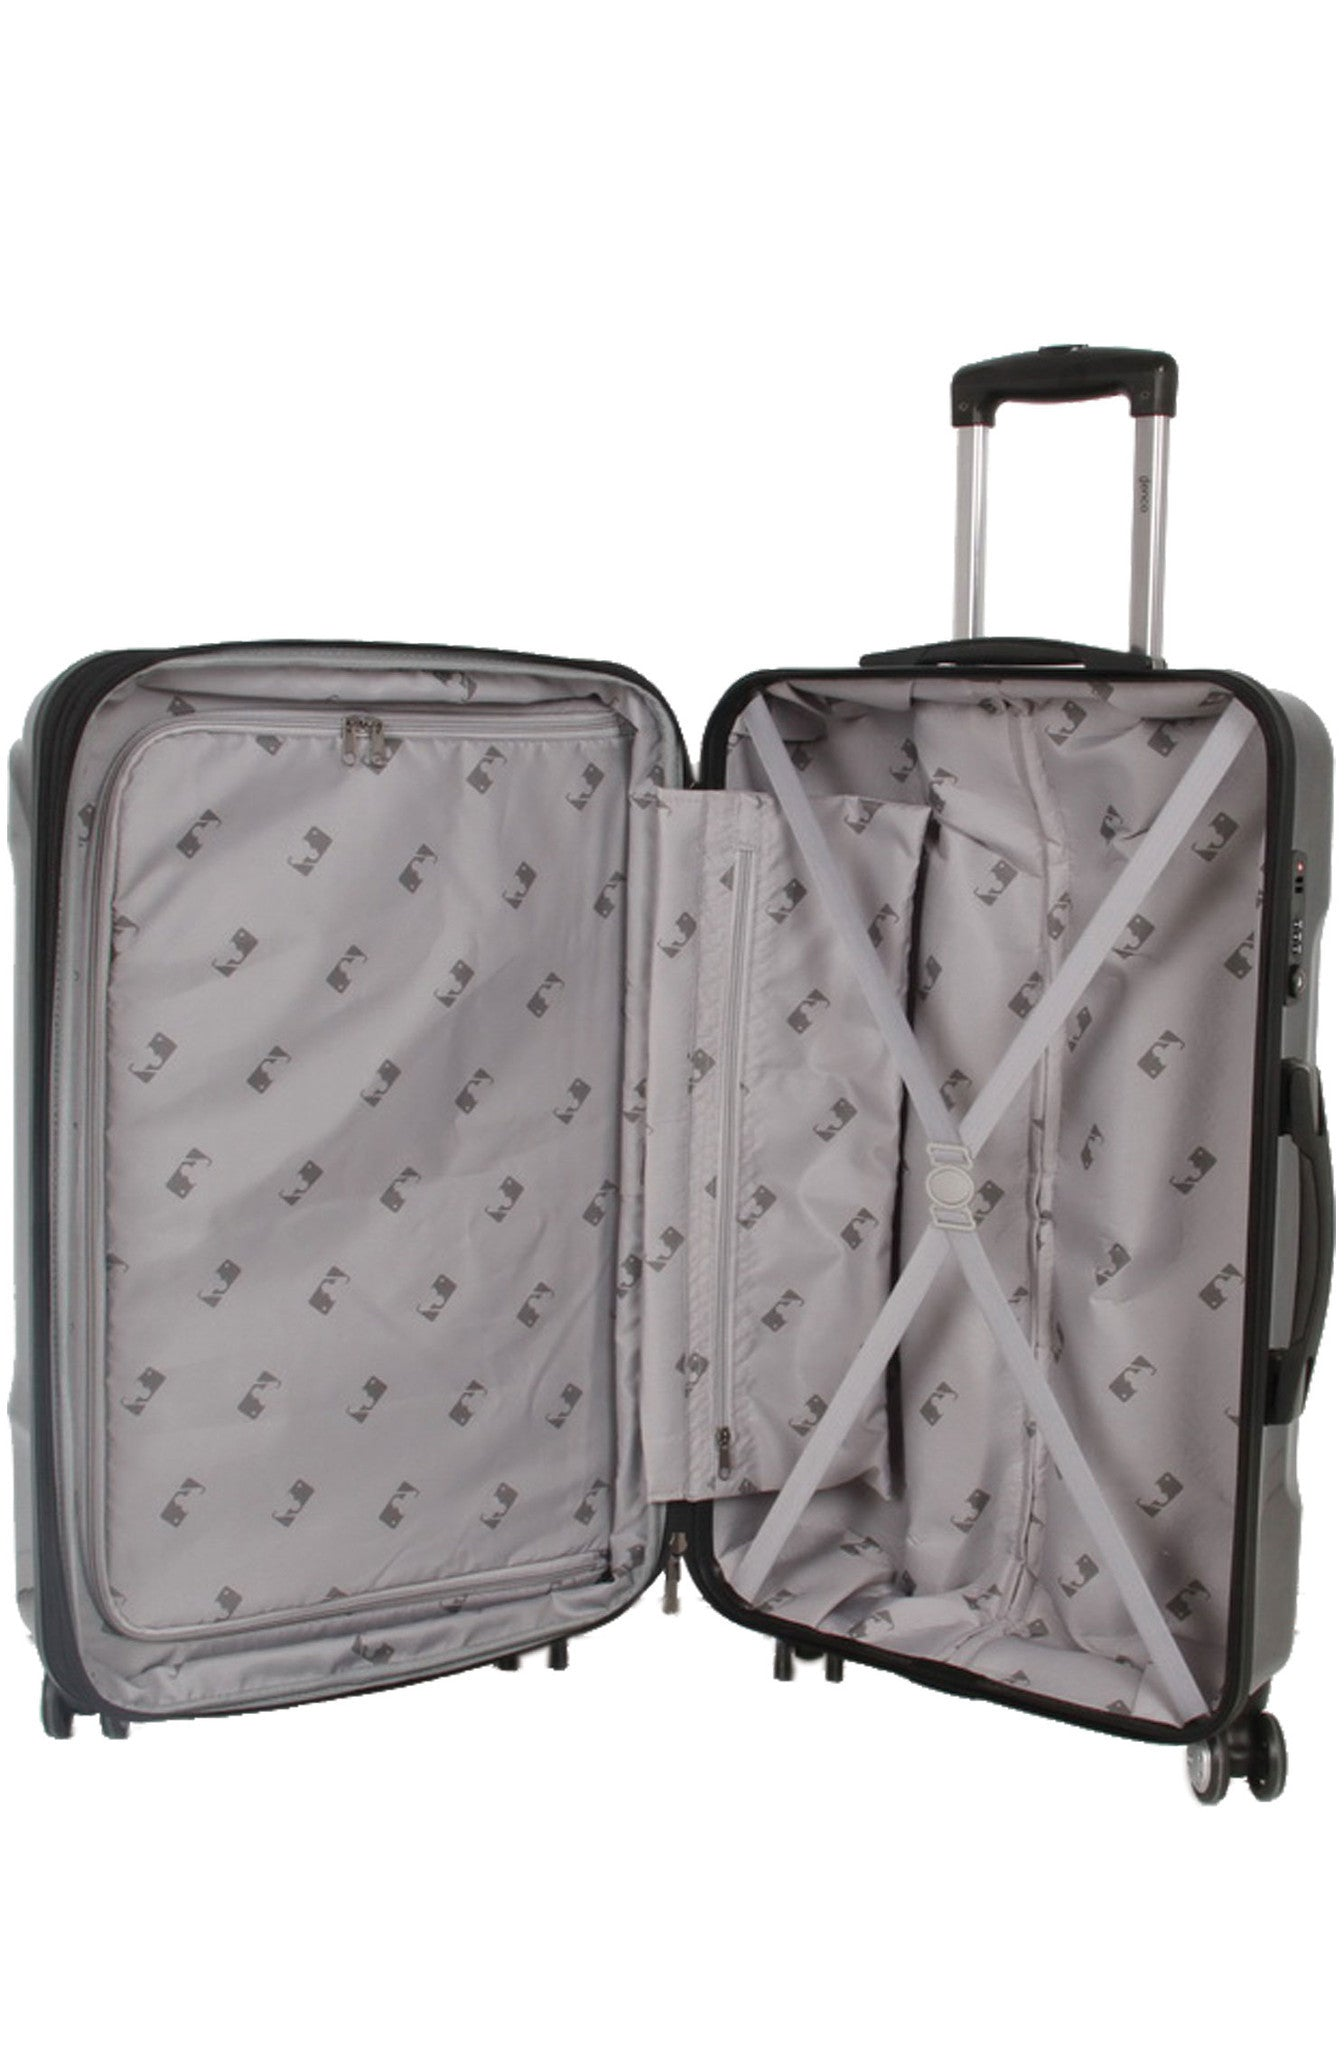 "New York Yankees, 26"" Premium Molded Luggage by Kaybull #NYY-26PCF - OBM Distribution, Inc."